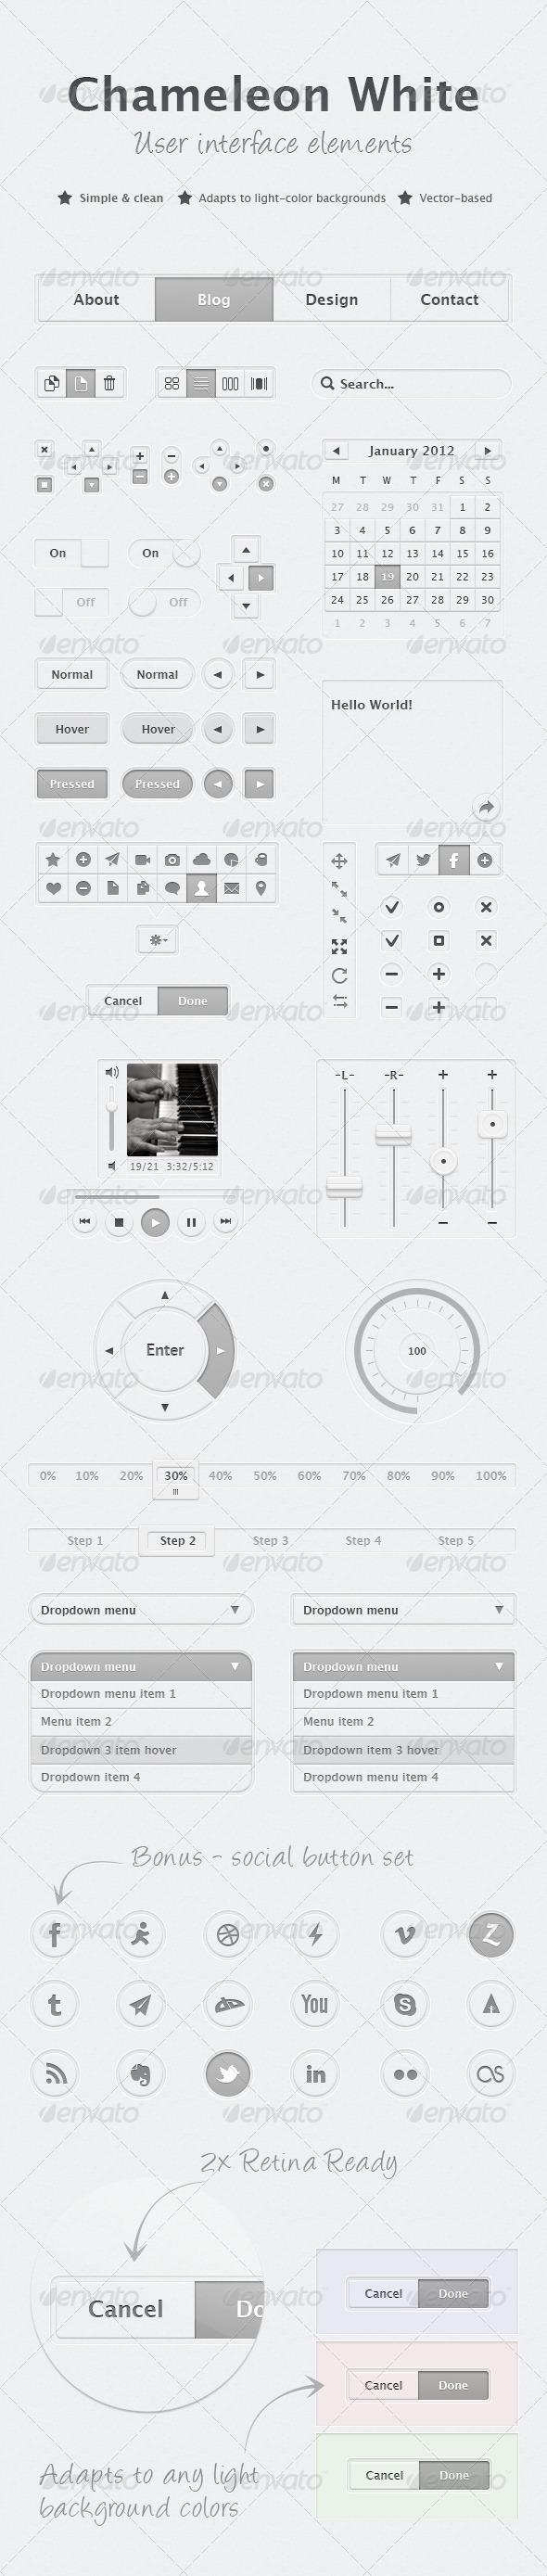 GraphicRiver Chameleon White UI Kit 3534437